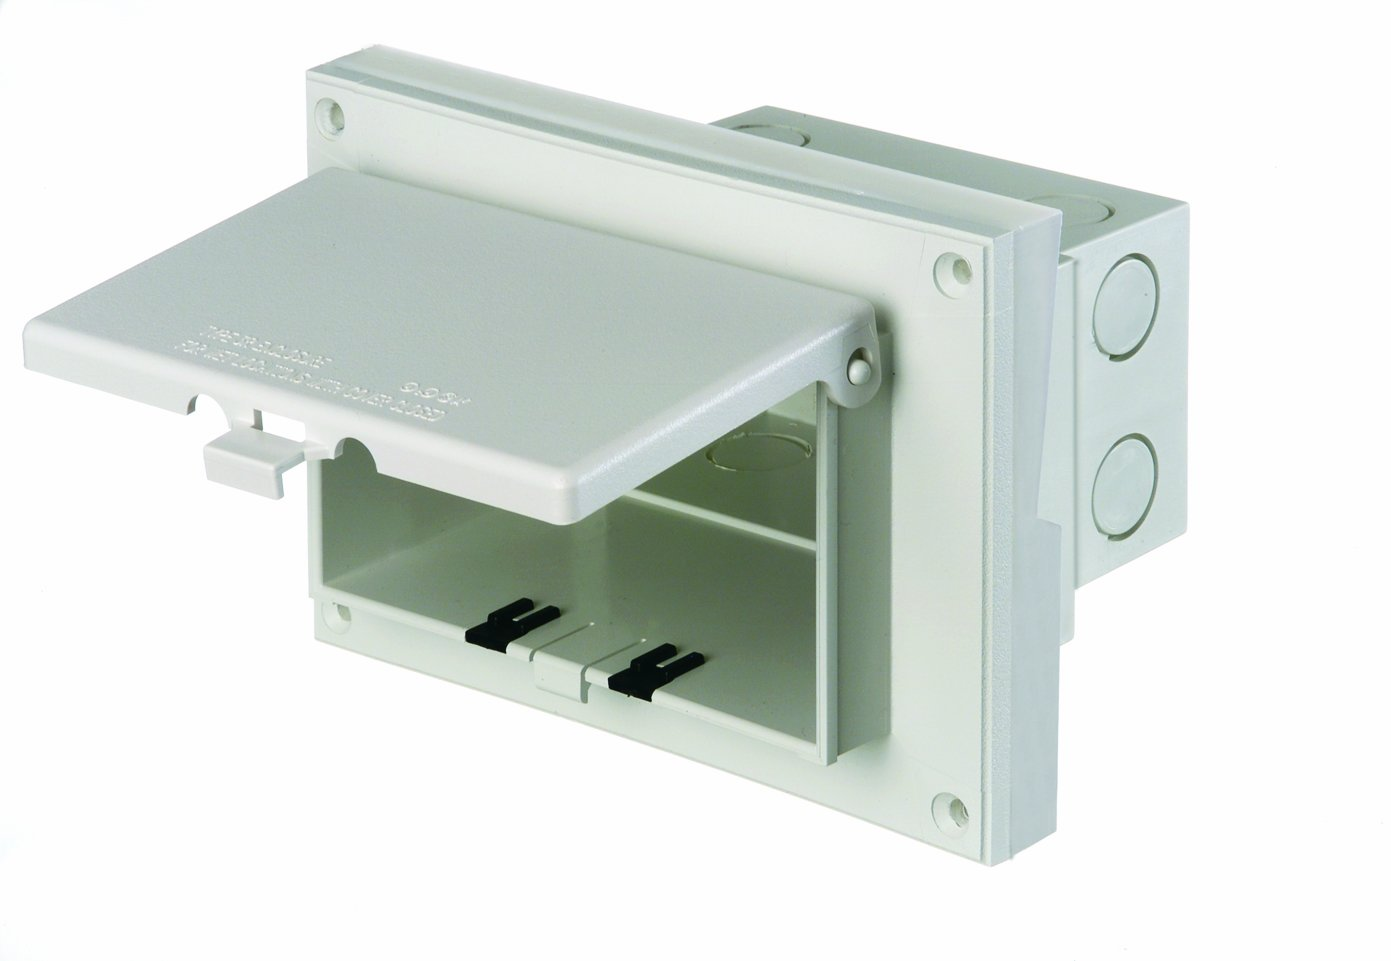 Arlington DBHR141W-1 Low Profile IN BOX Electrical Box with Weatherproof Cover for Retrofit Siding Construction, 1/2-Inch Lap, Horizontal, White Arlington Industries. Inc